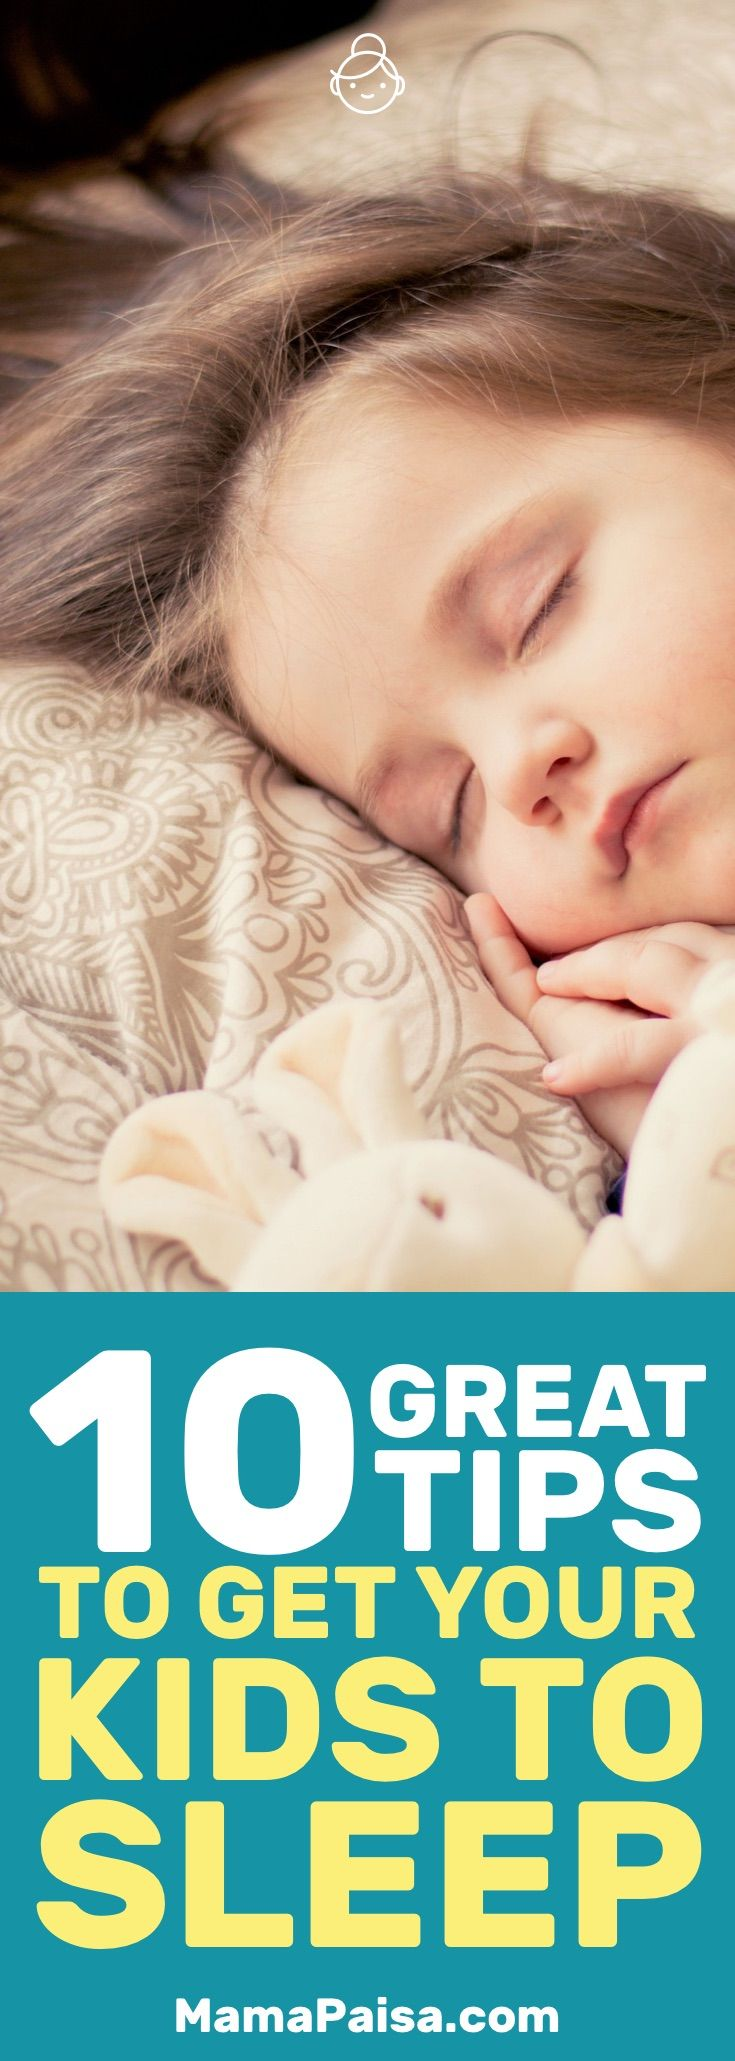 I've been looking for ways to help put my kid to sleep easier and these tips were awesome in helping me out. Now it's easier to get my baby to sleep when I need to. #BabyTips